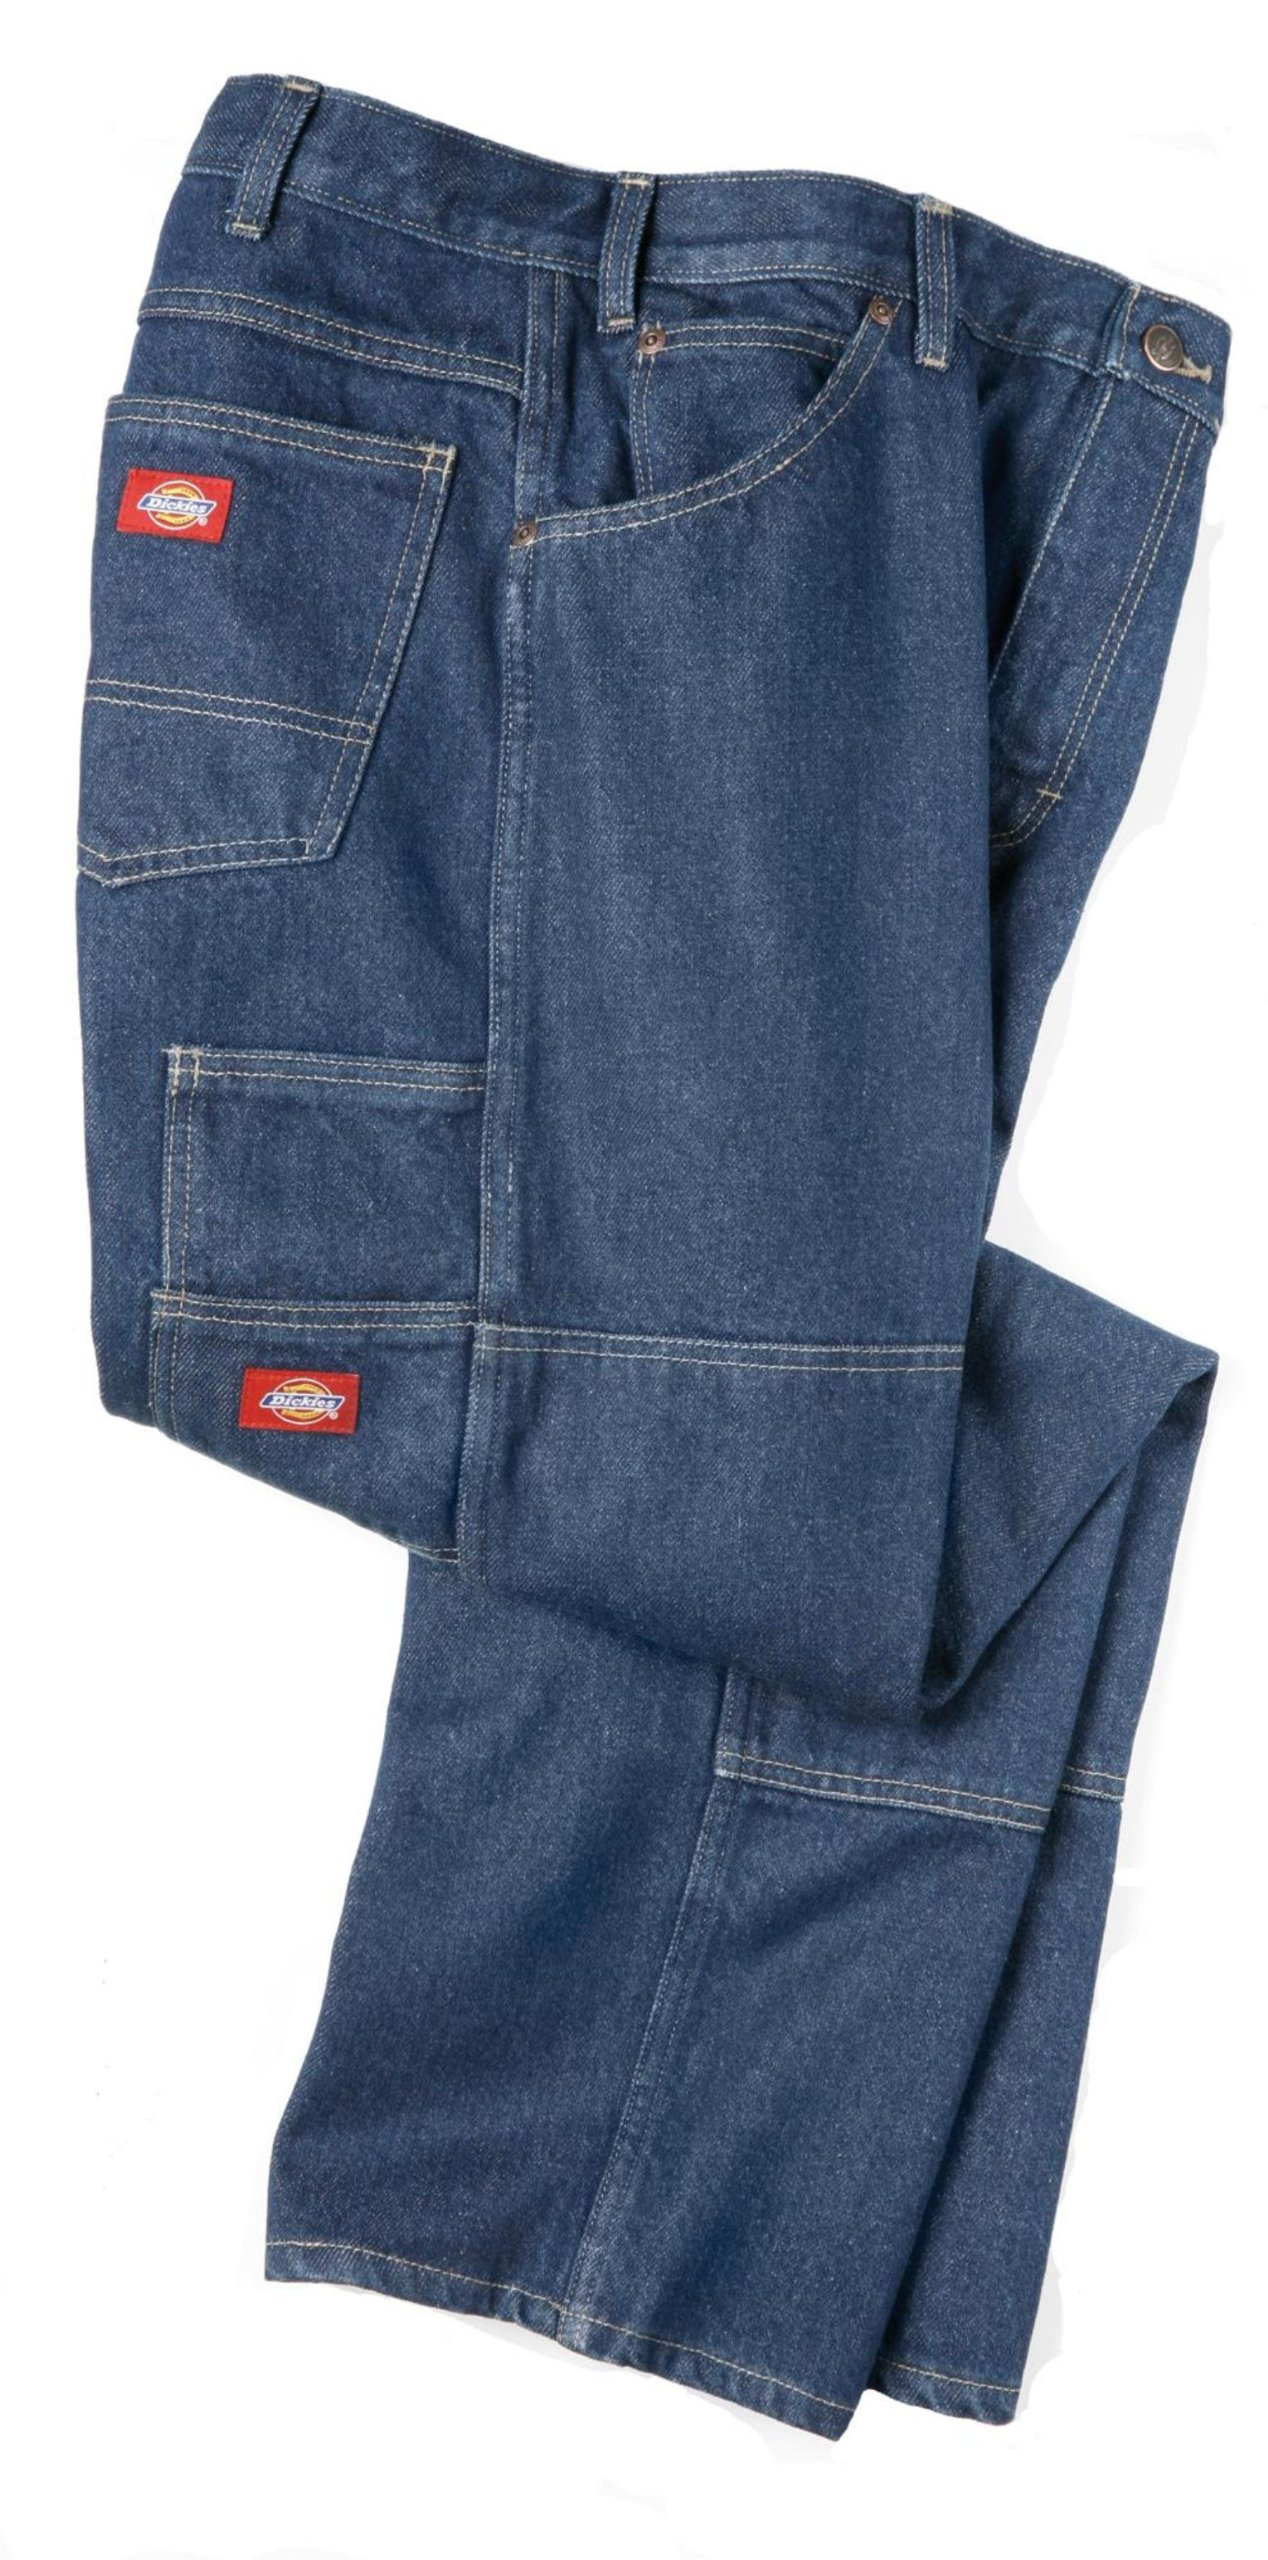 Size 31X39 39 Unfinished Inseam LD200 Industrial Double Knee Jean